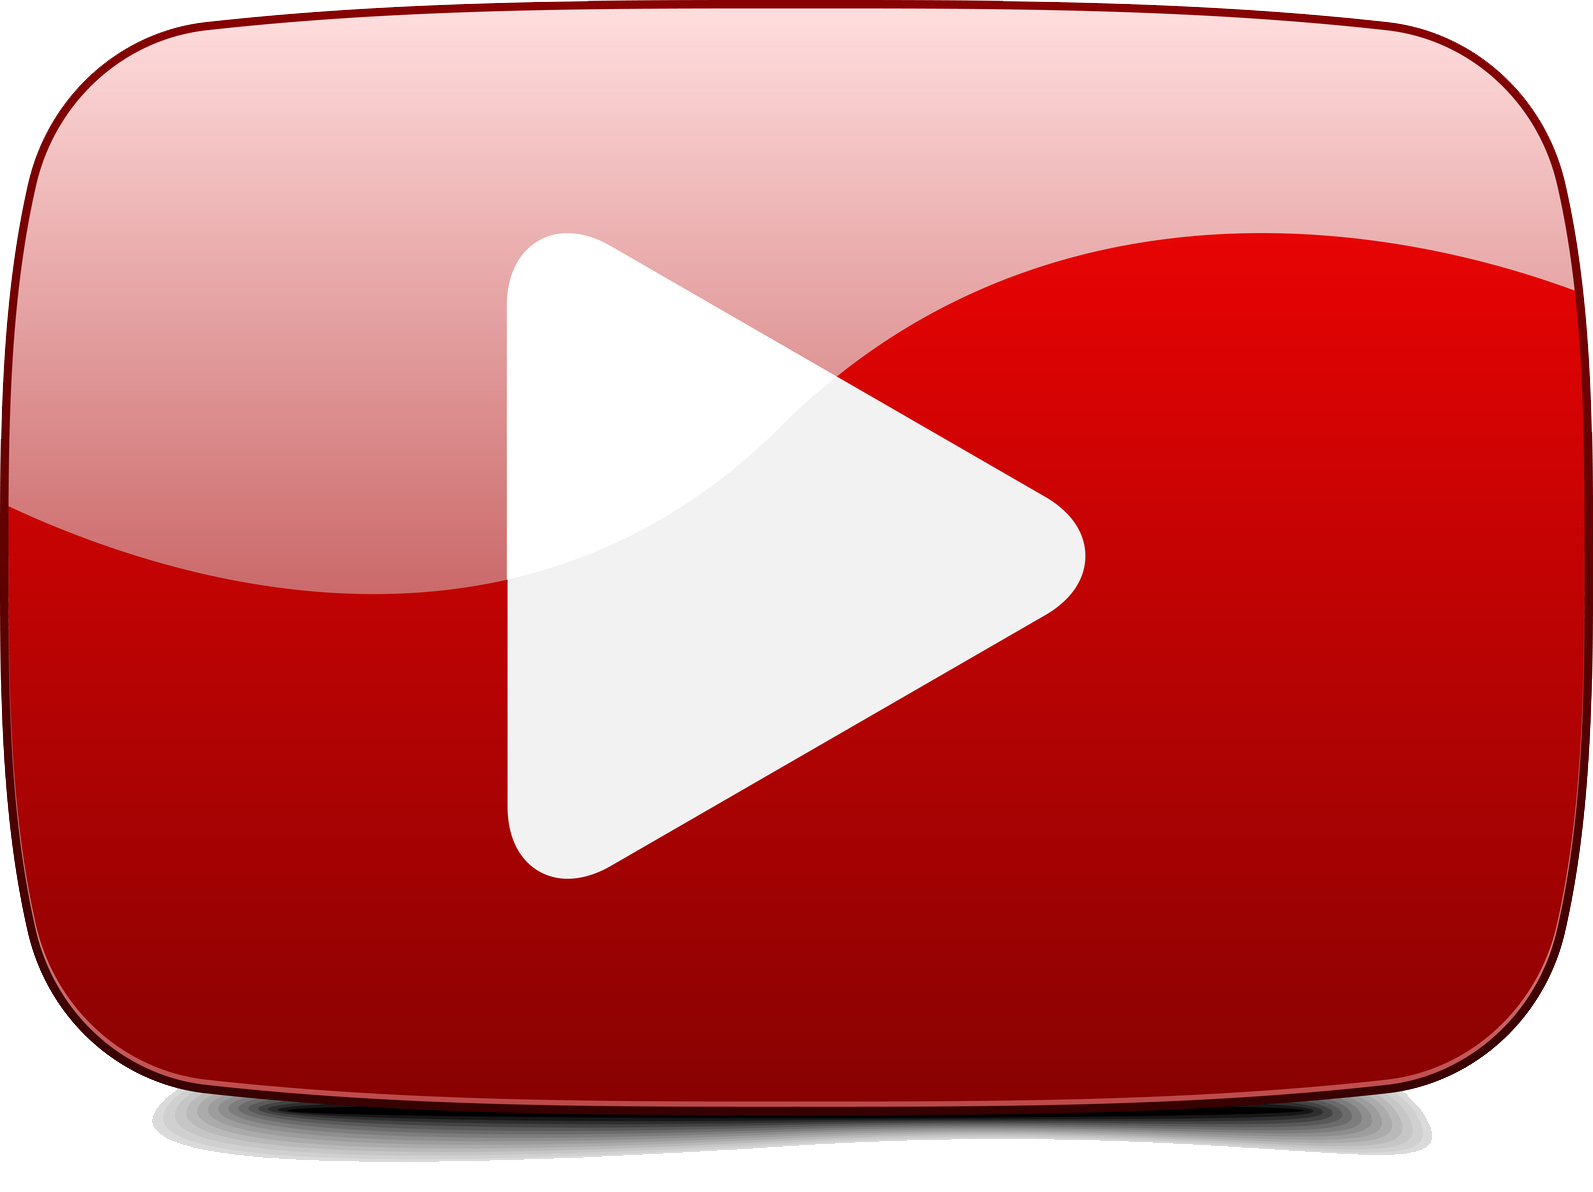 Play Downloader Button Youtube Photos Video 4K PNG Image